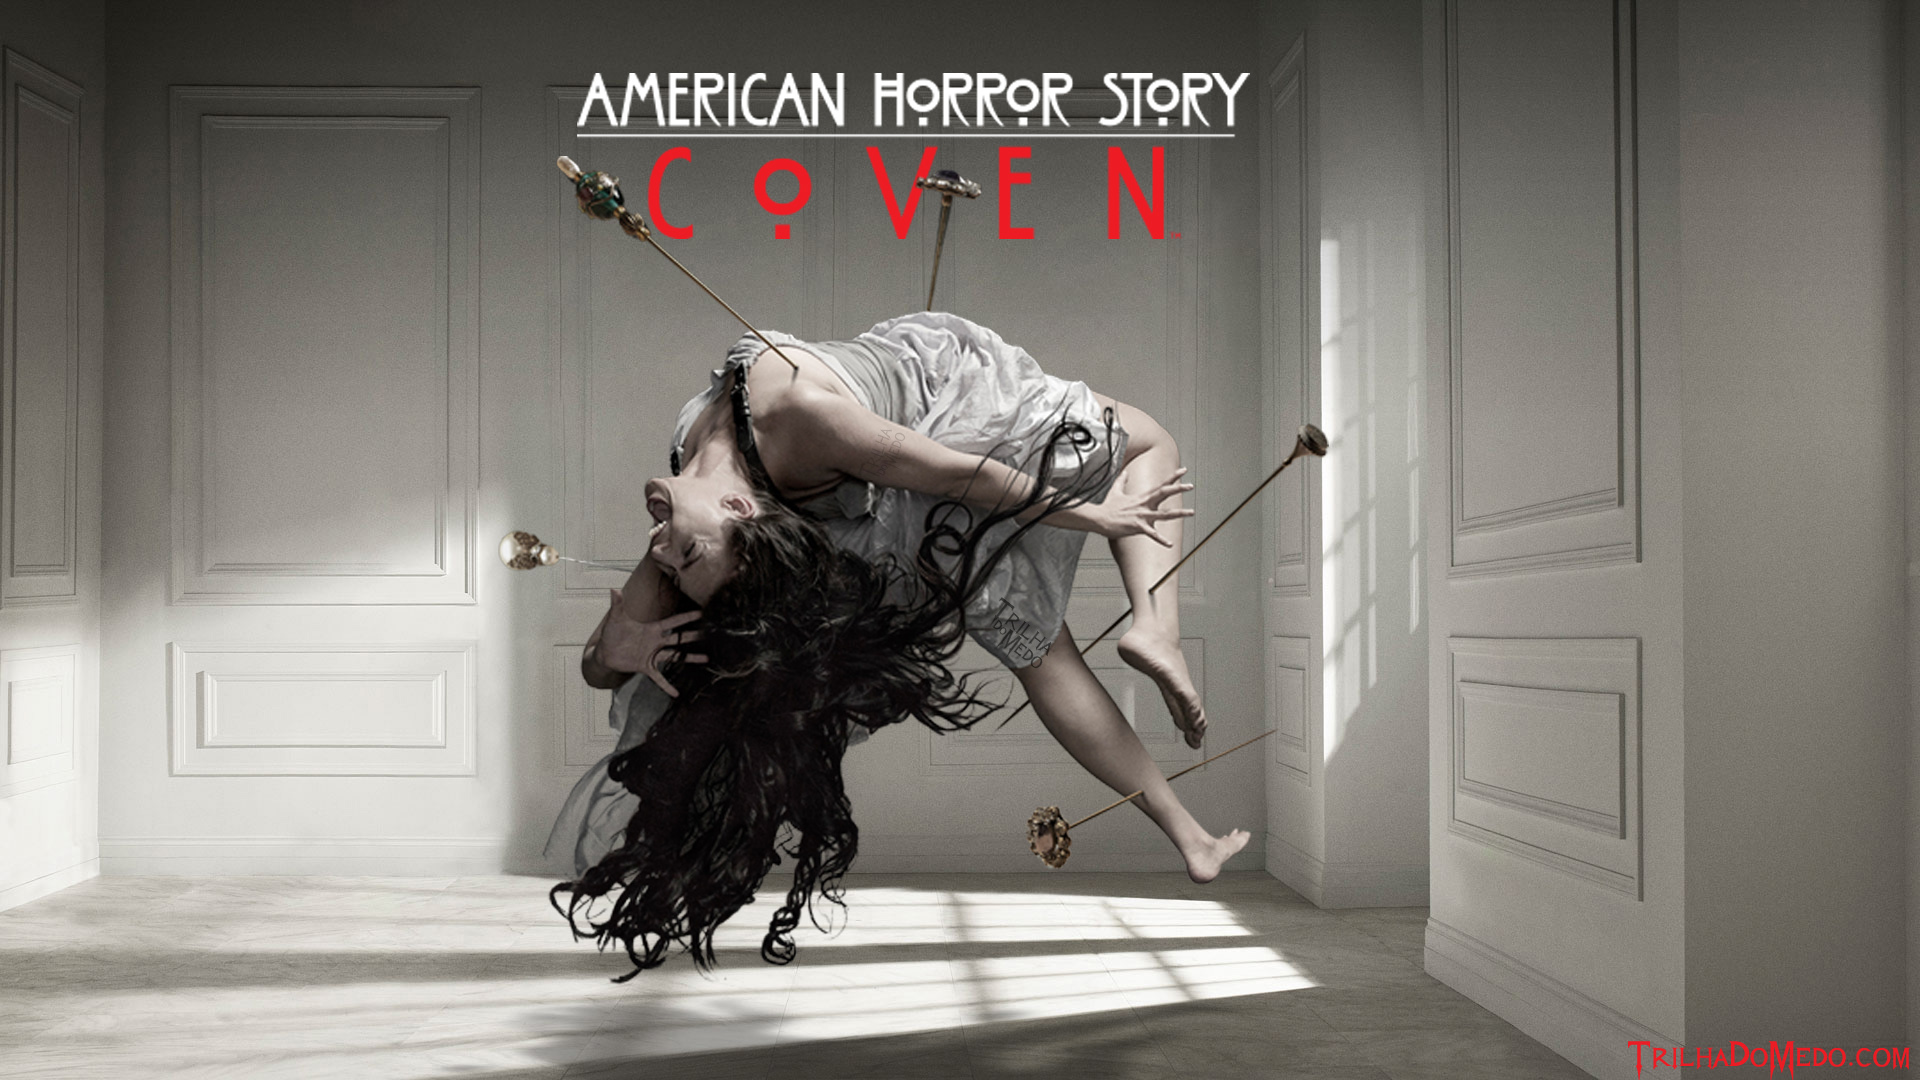 American horror story coven fonds d 39 cran arri res plan 1920x1080 id 612249 - American horror story wallpaper ...